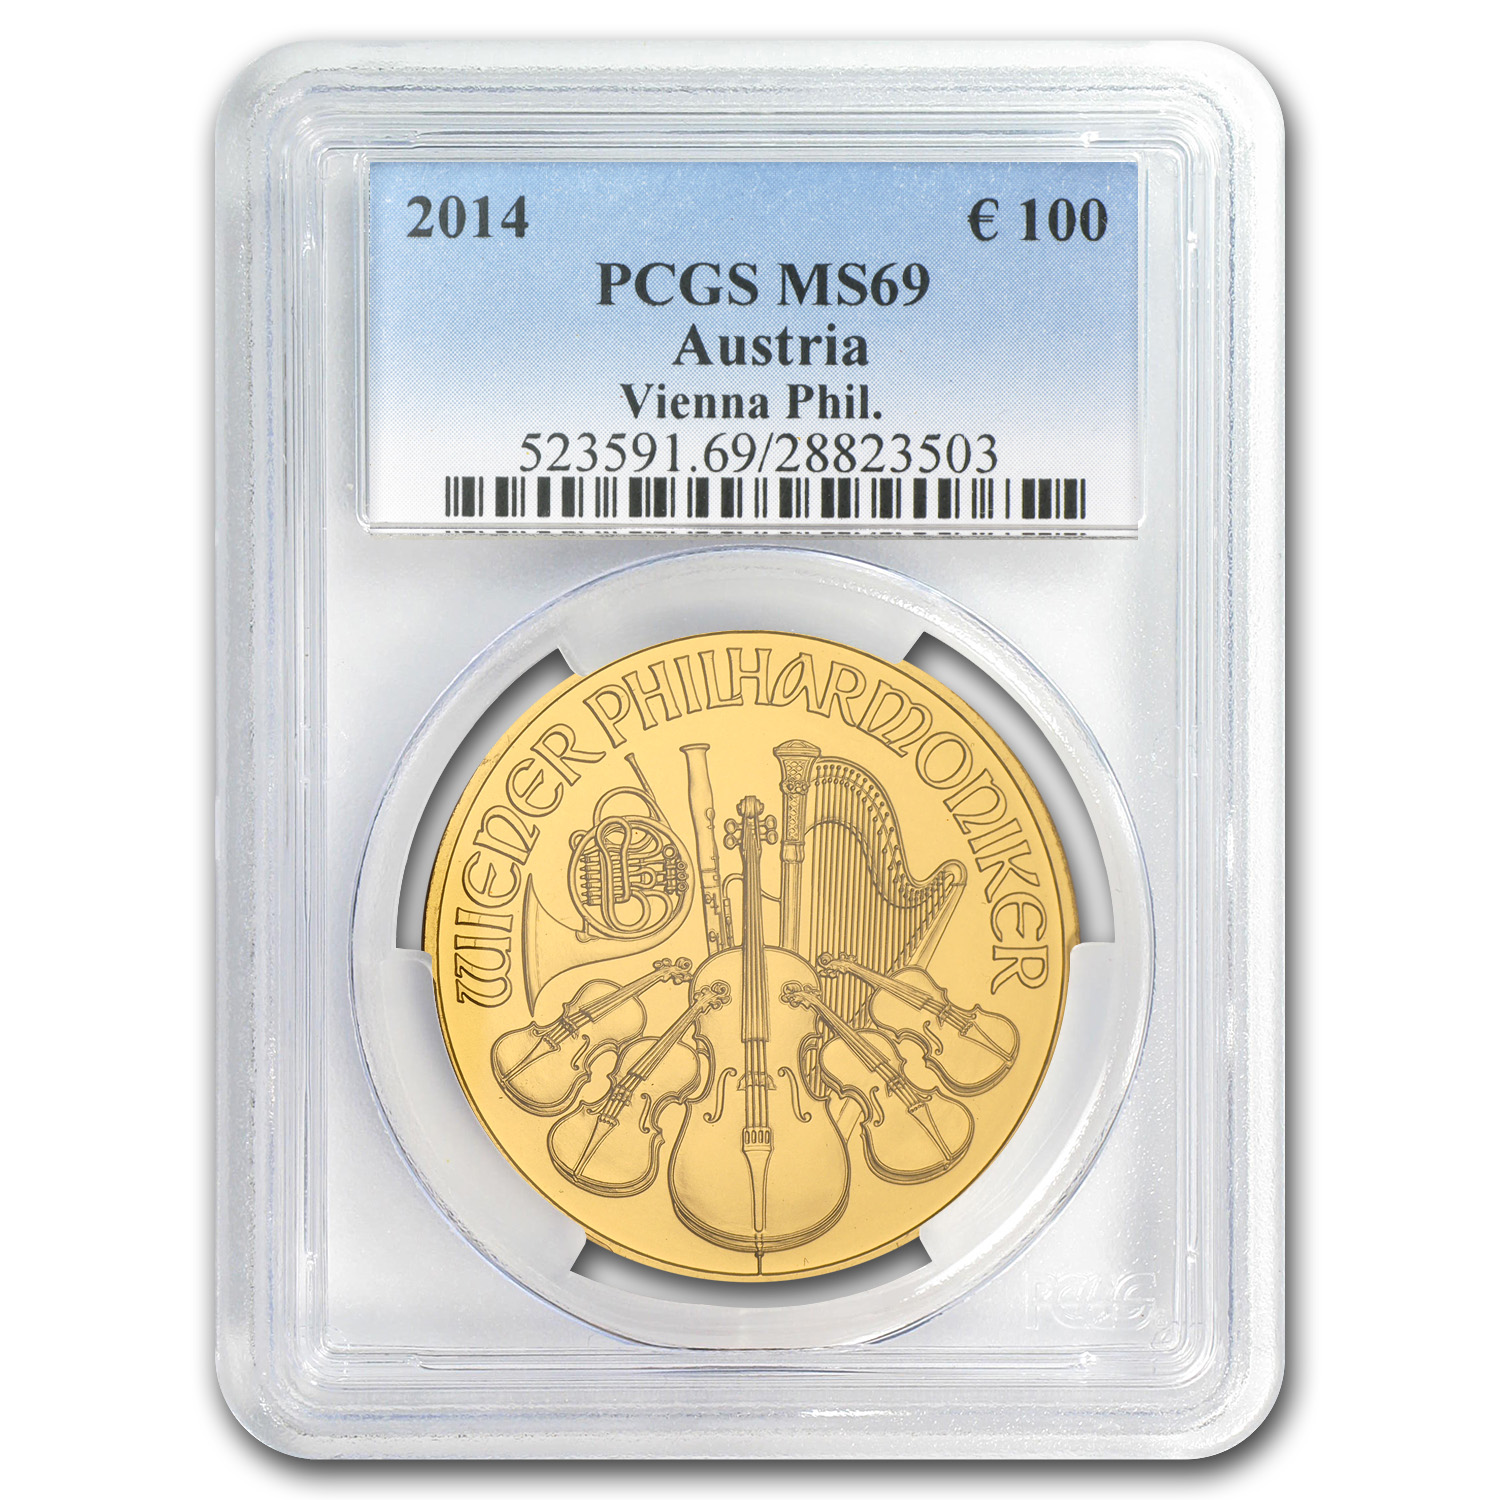 2014 1 oz Gold Austrian Philharmonic MS-69 PCGS